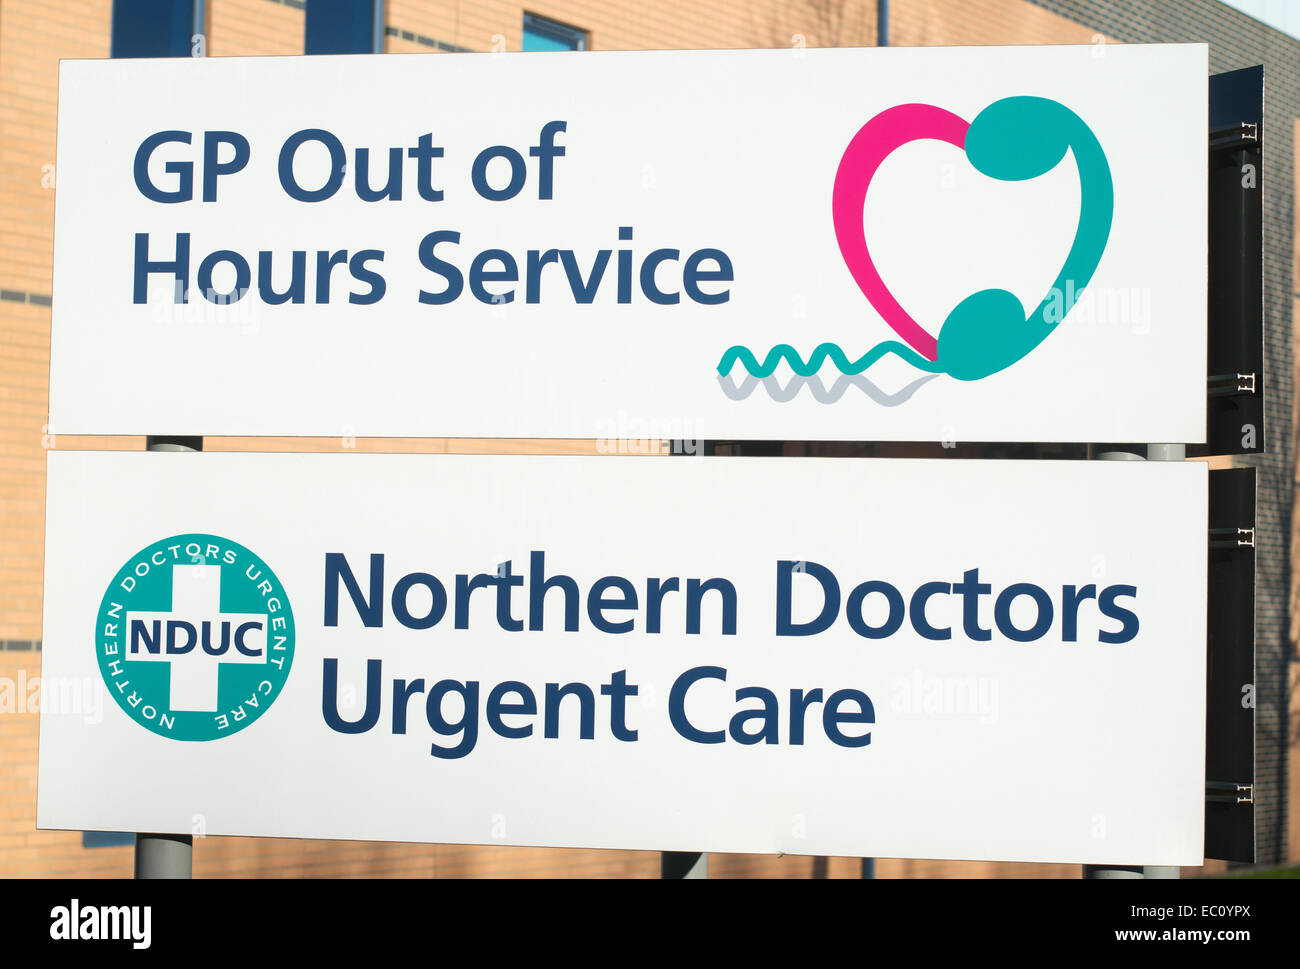 GP out of hours service sign outside Crutes House, Stockton, north east England, UK - Stock Image